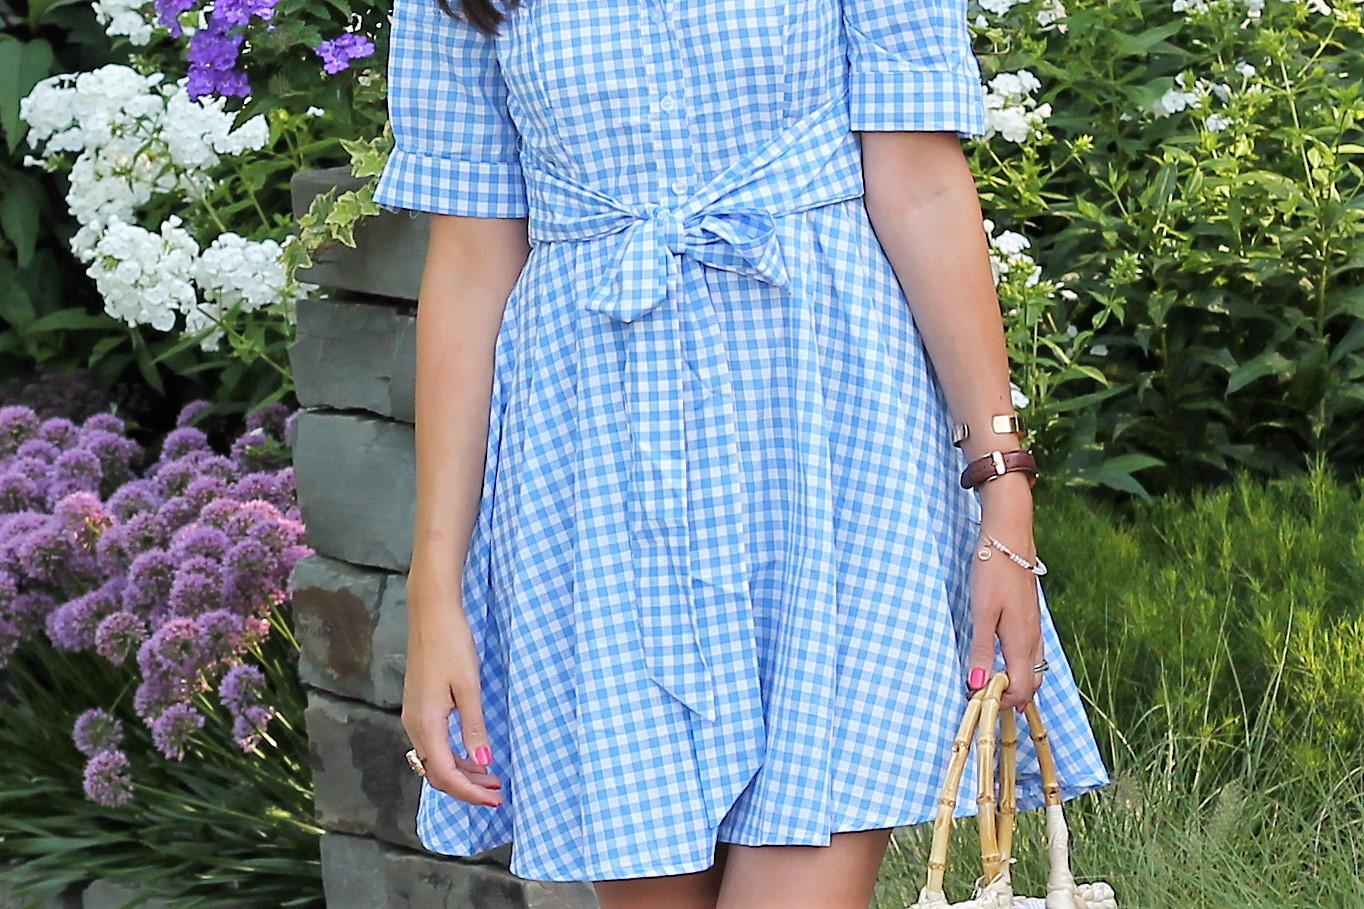 Blue Gingham Shirt Dress + Tips On Moving